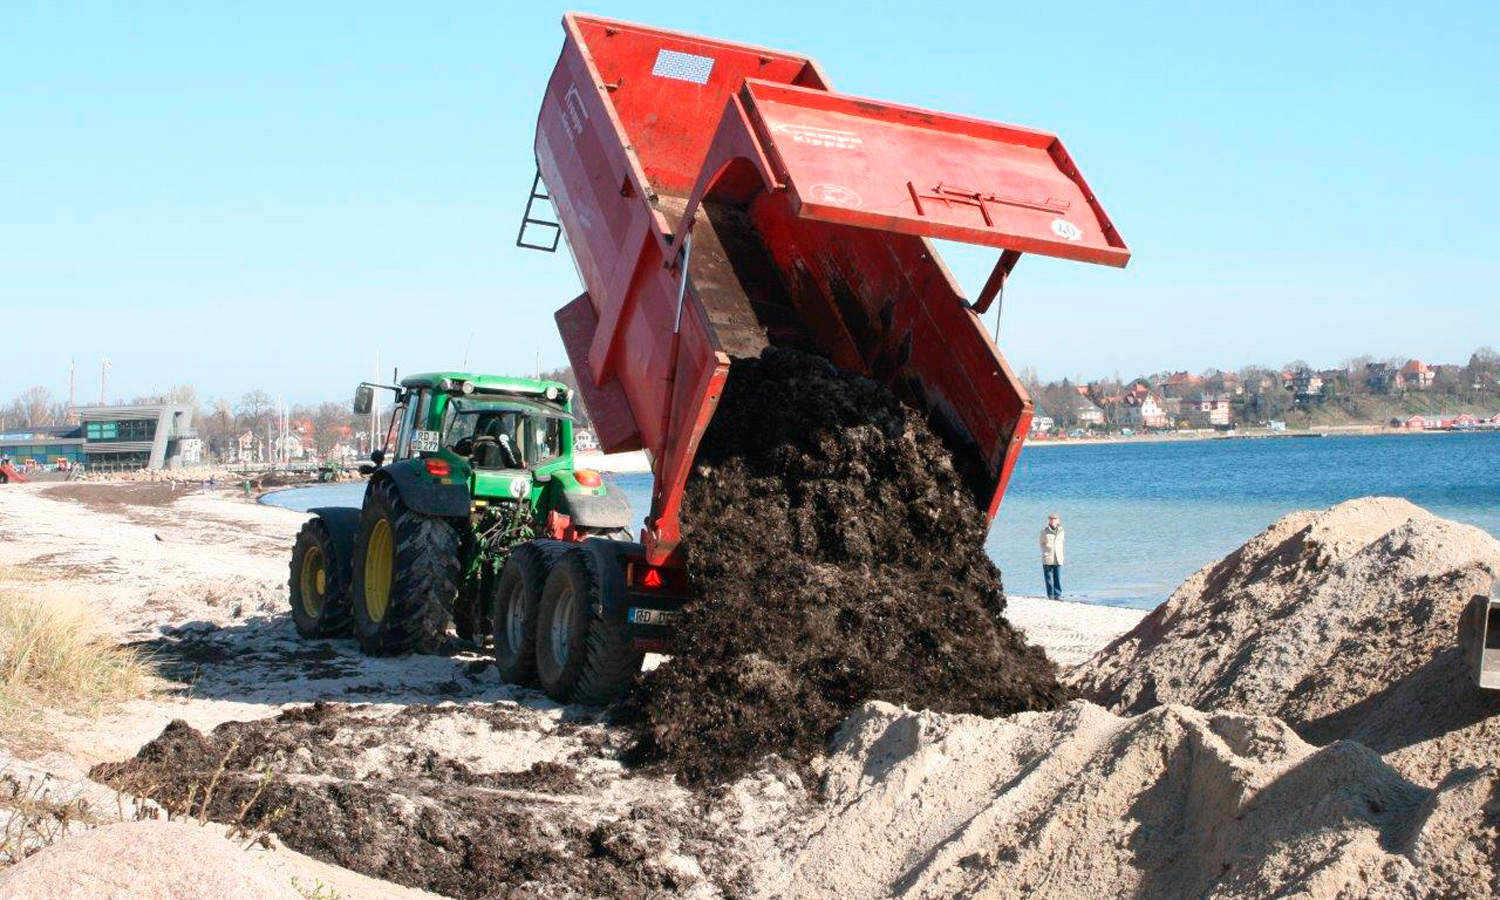 Beach wrack being used to build a dune system.